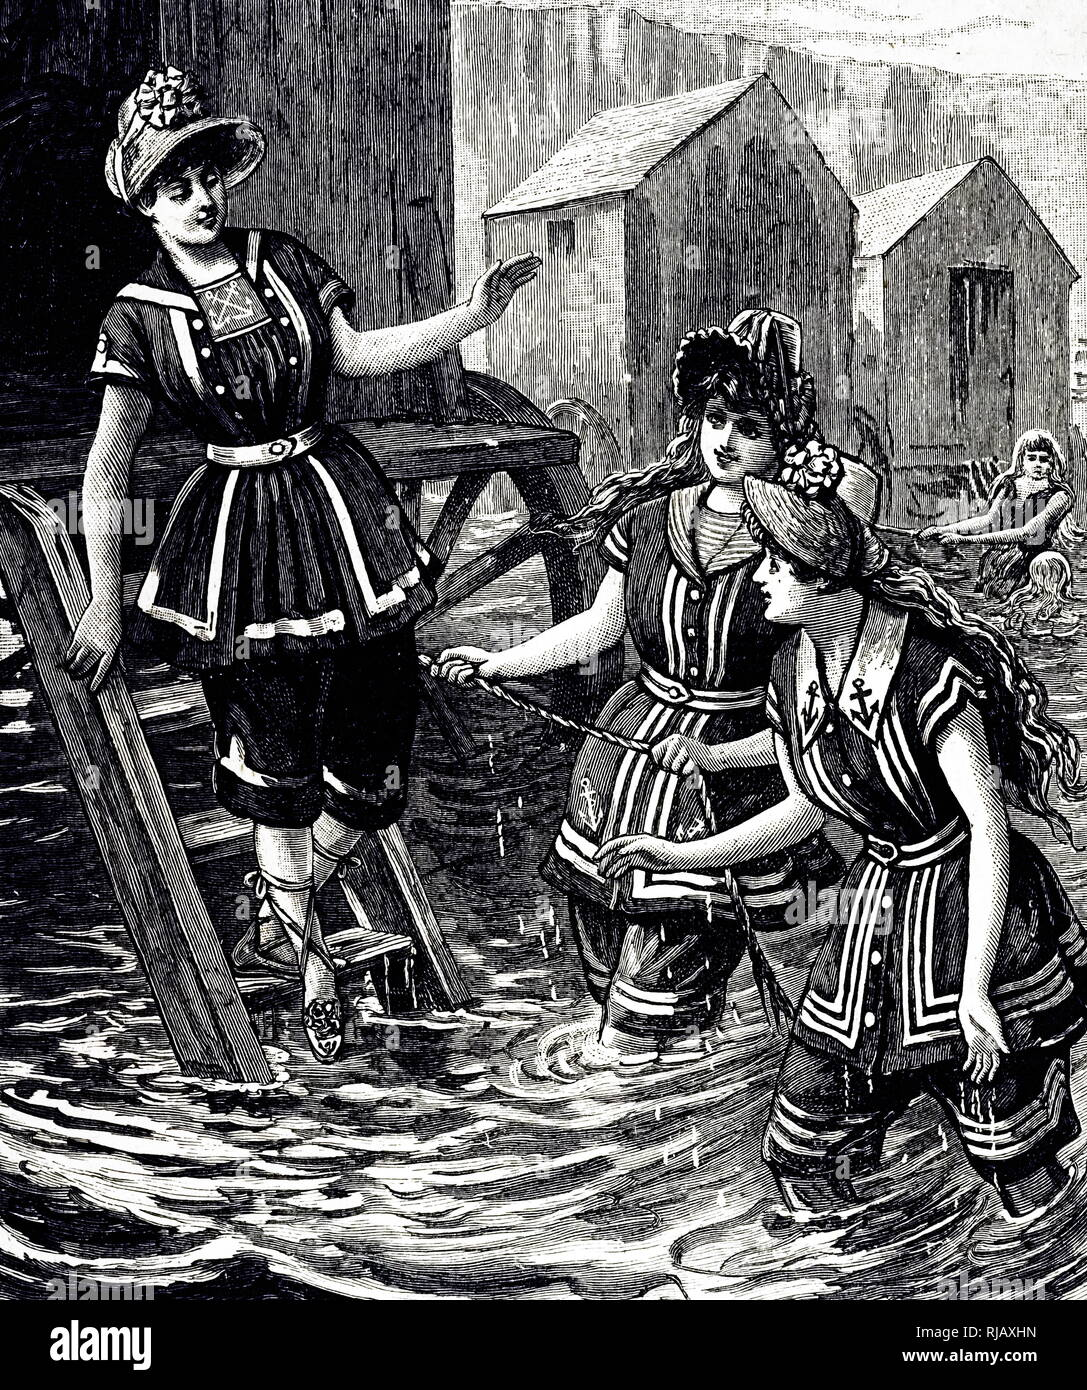 An engraving depicting women wearing bathing costumes of French design. Dated 19th century - Stock Image